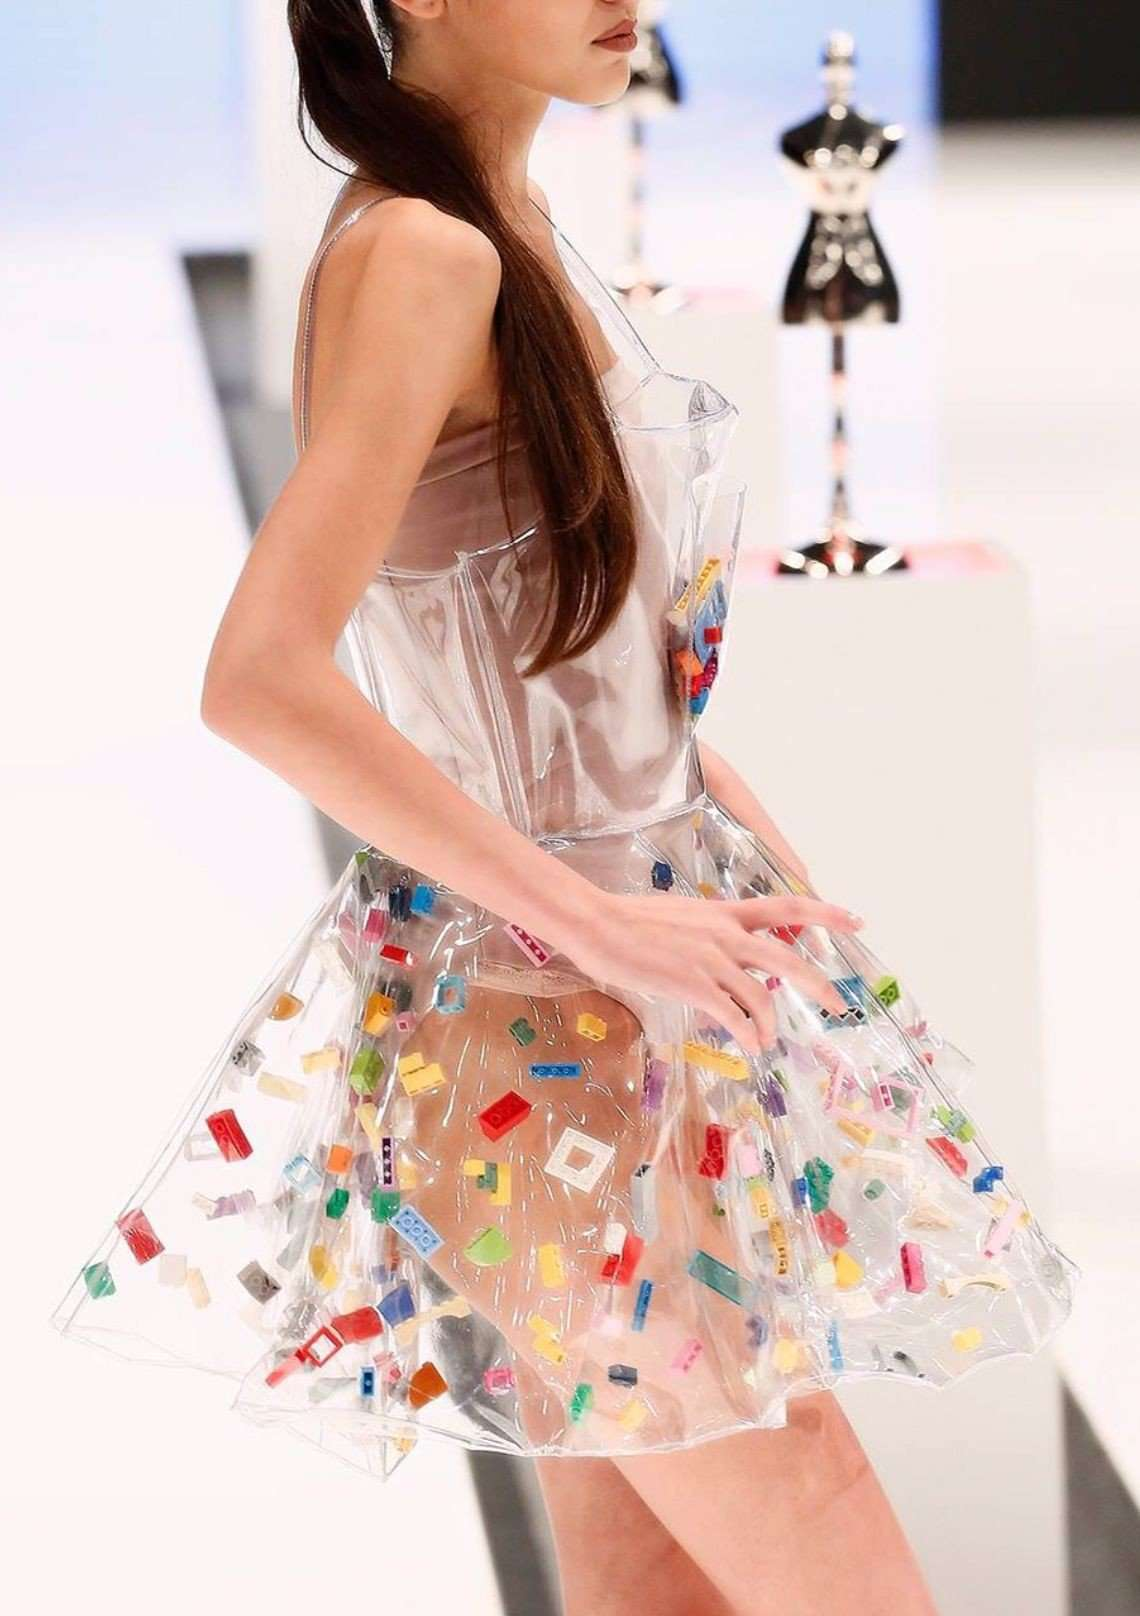 Lego dress,Hala Kastoun, Curated Designer at Freesigners.com